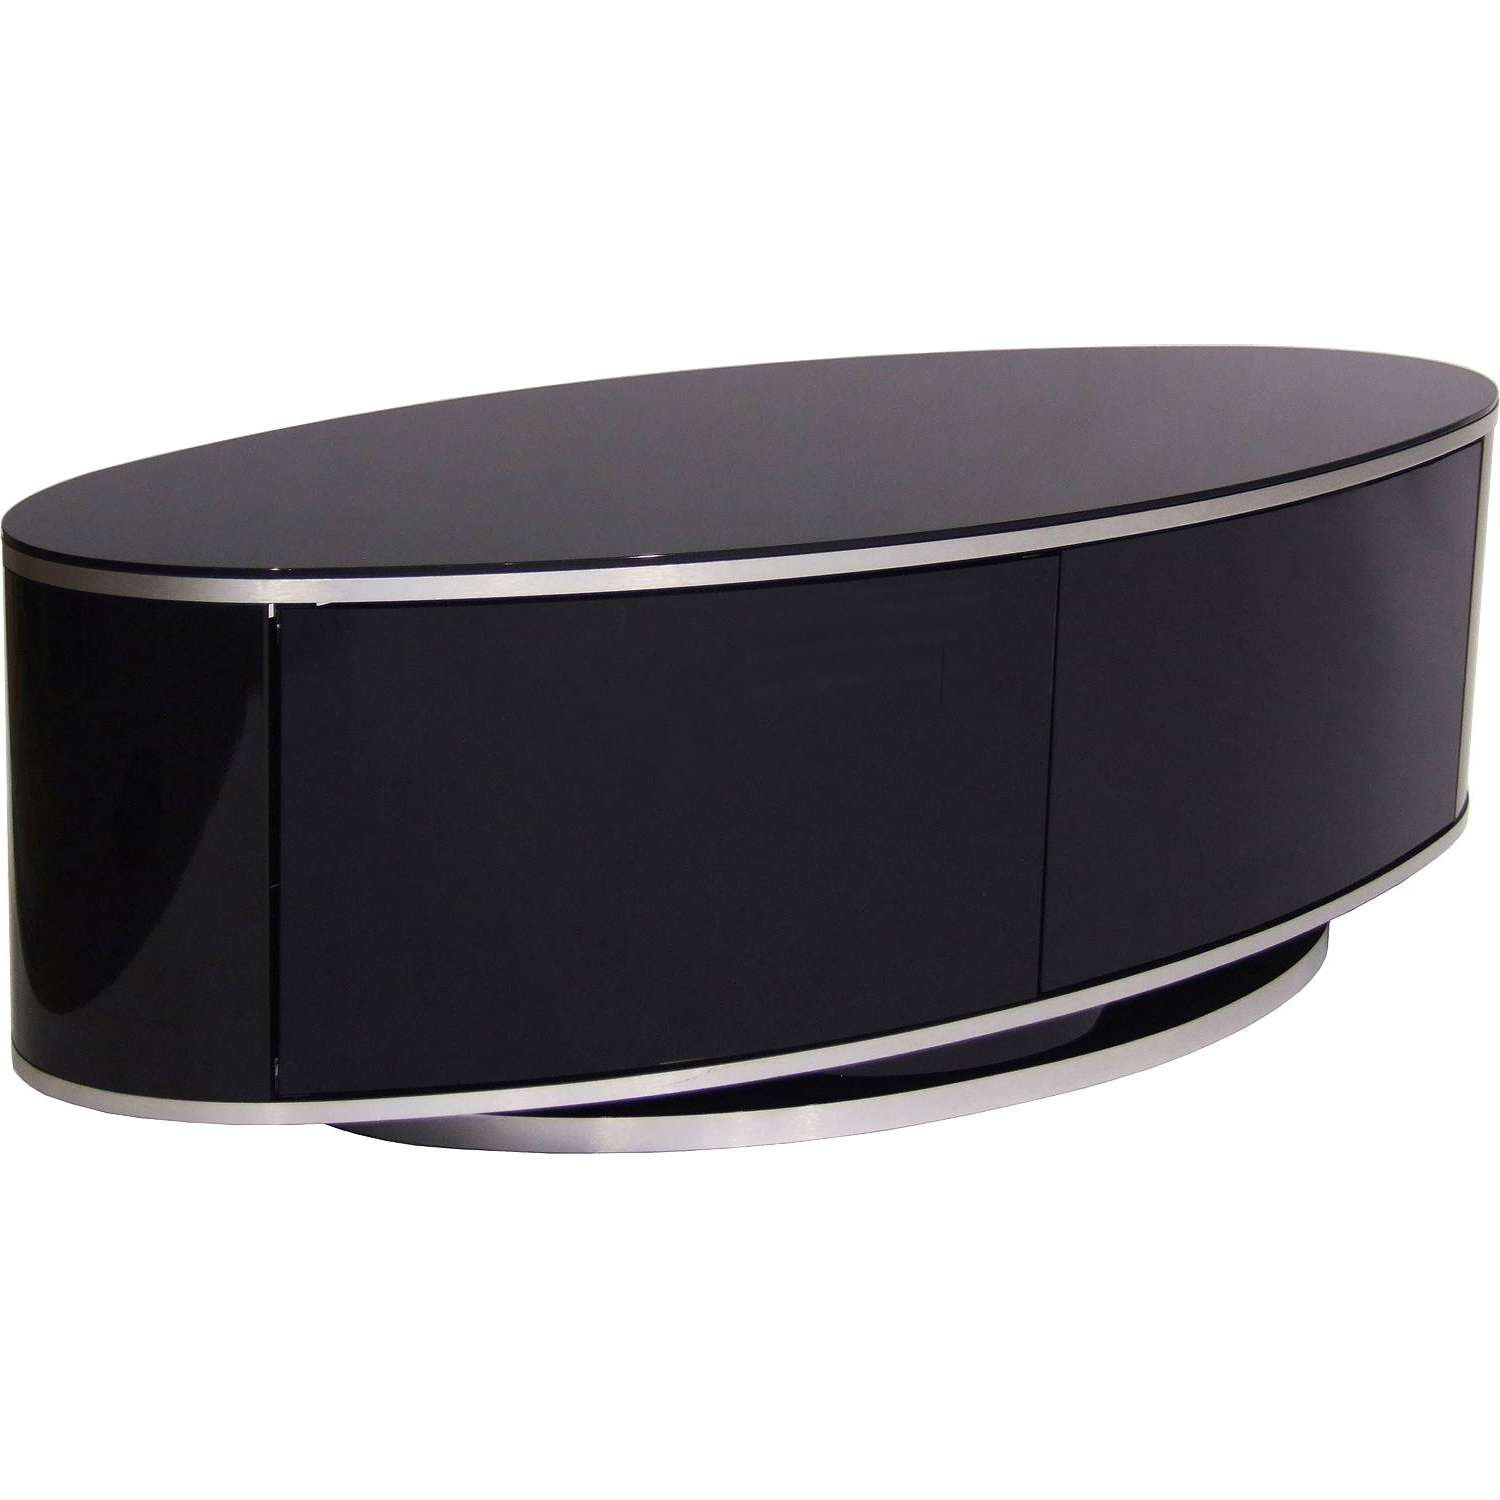 """Mda Designs Luna Av High Gloss Black Oval Tv Cabinet Up To 55"""" Tvs In Oval Tv Stands (View 11 of 20)"""